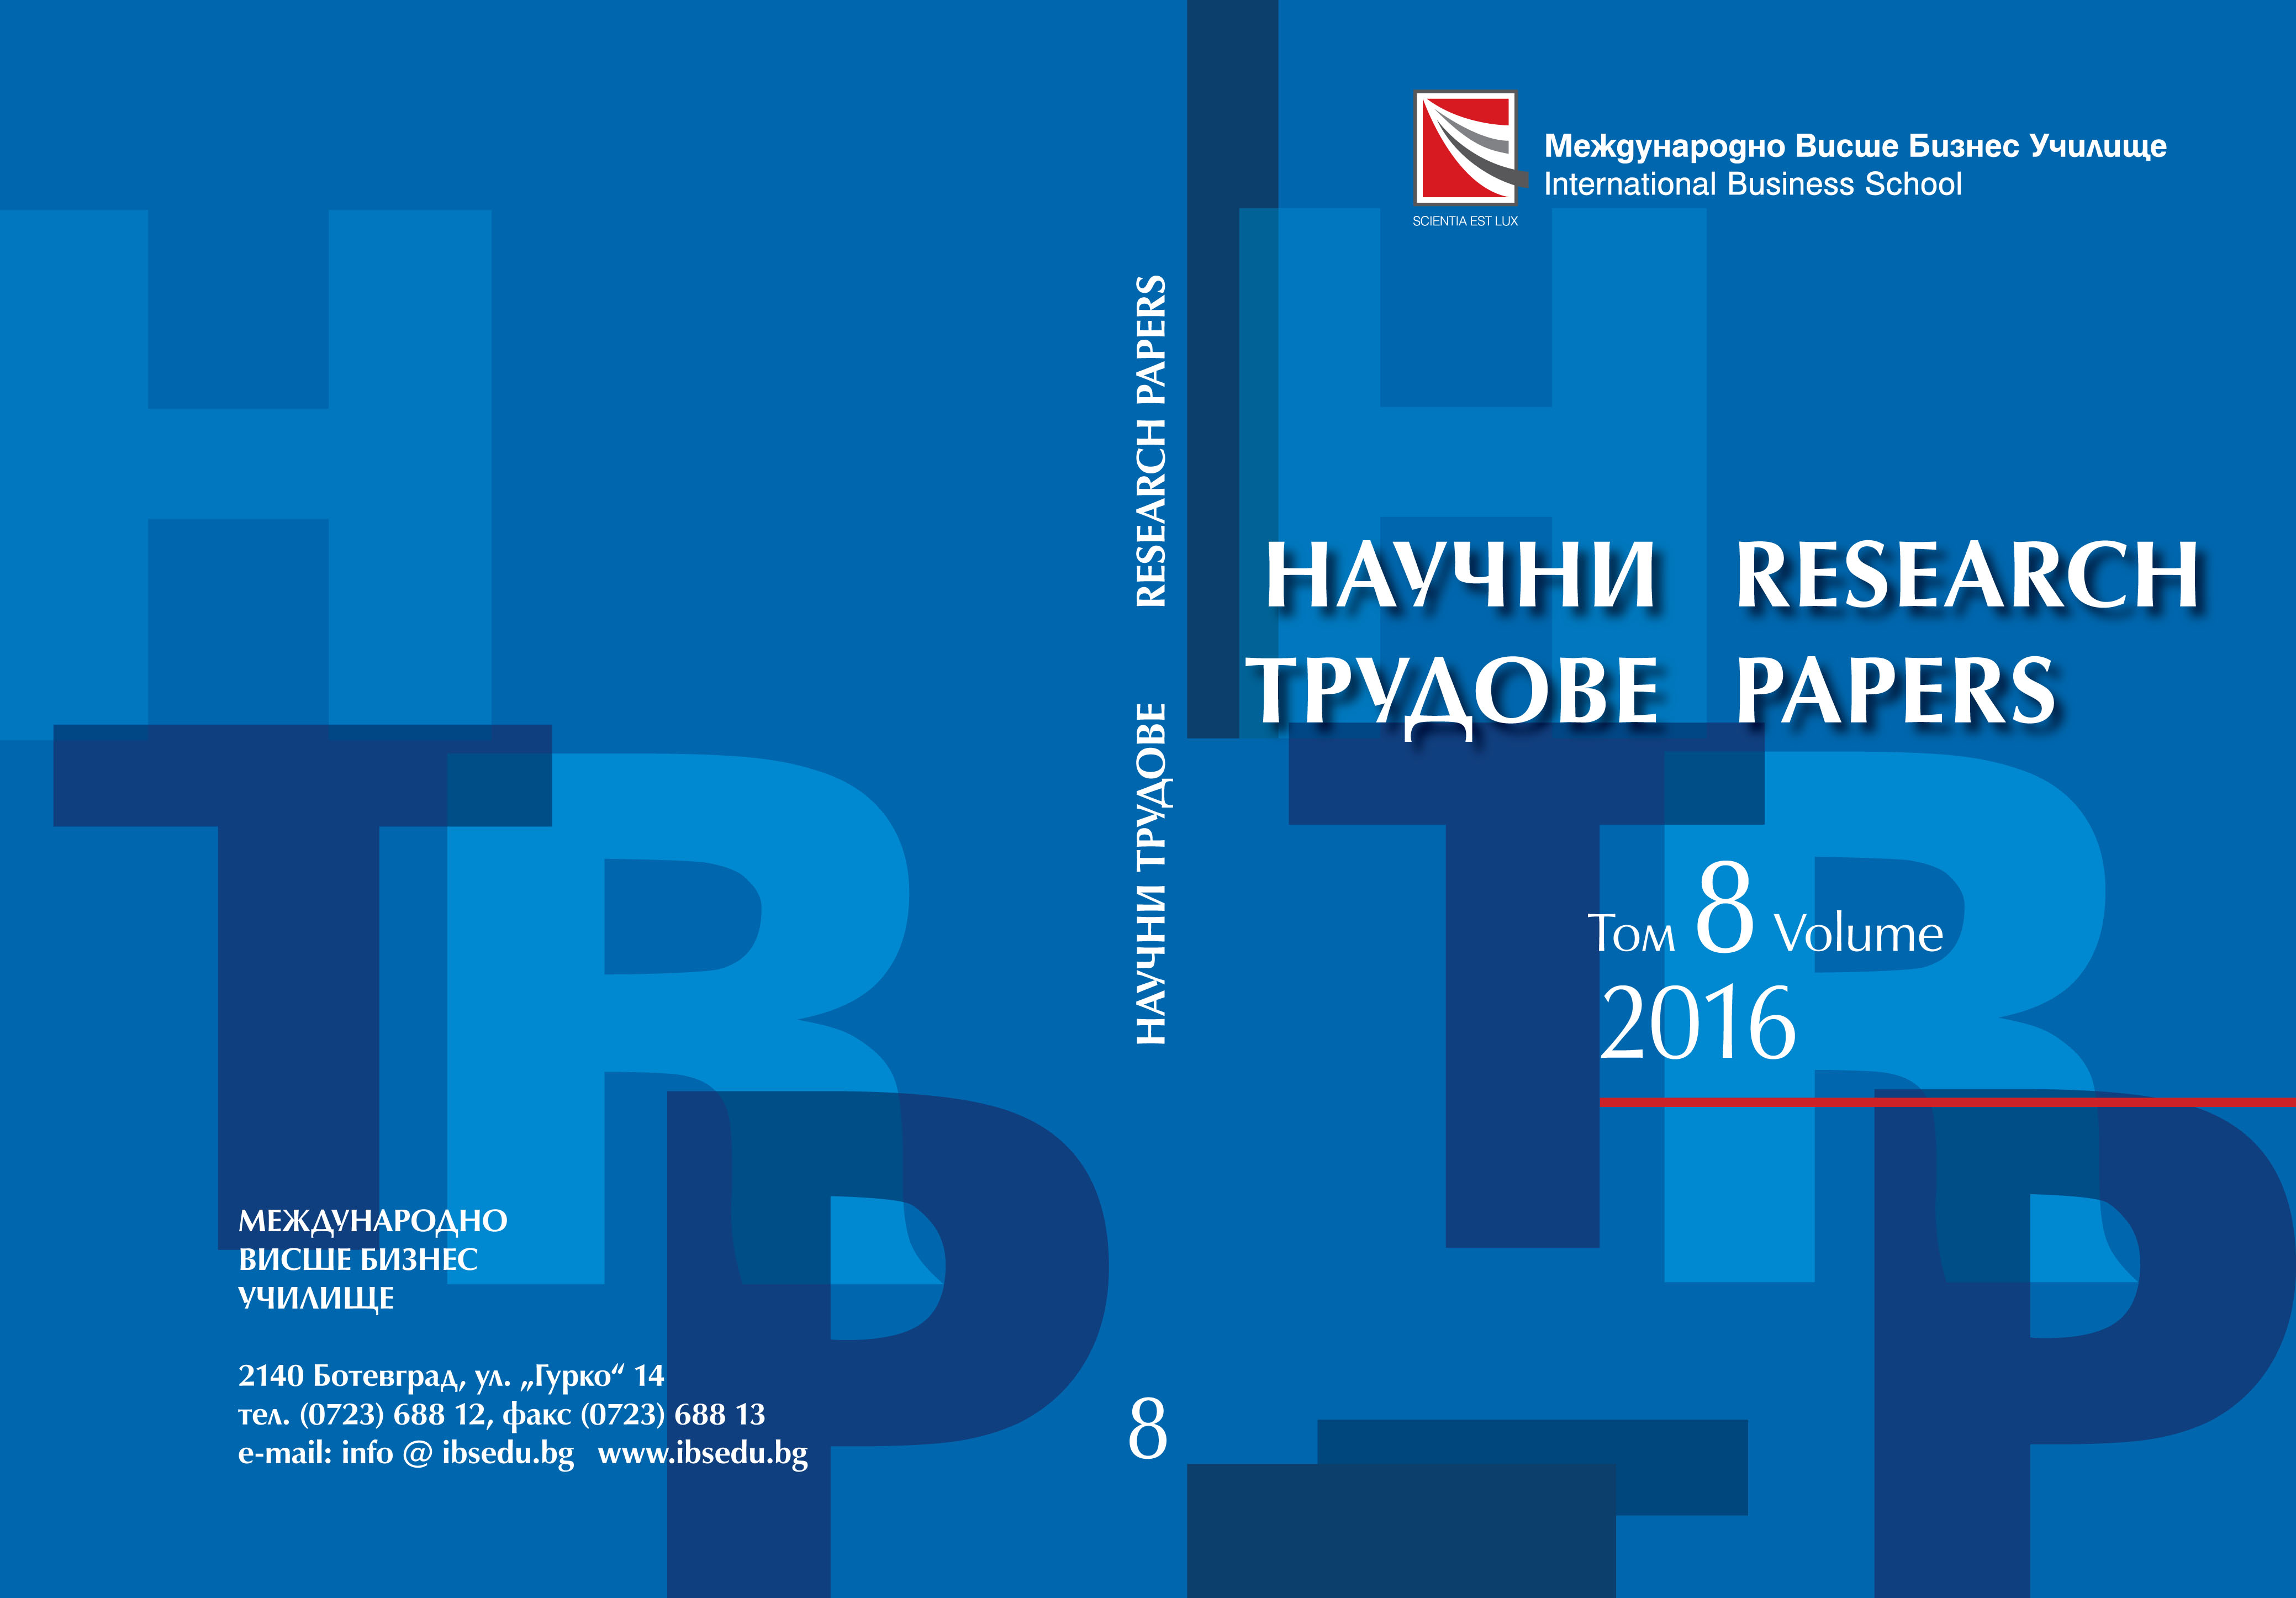 Research Papers. International Business School - Botevgrad Cover Image